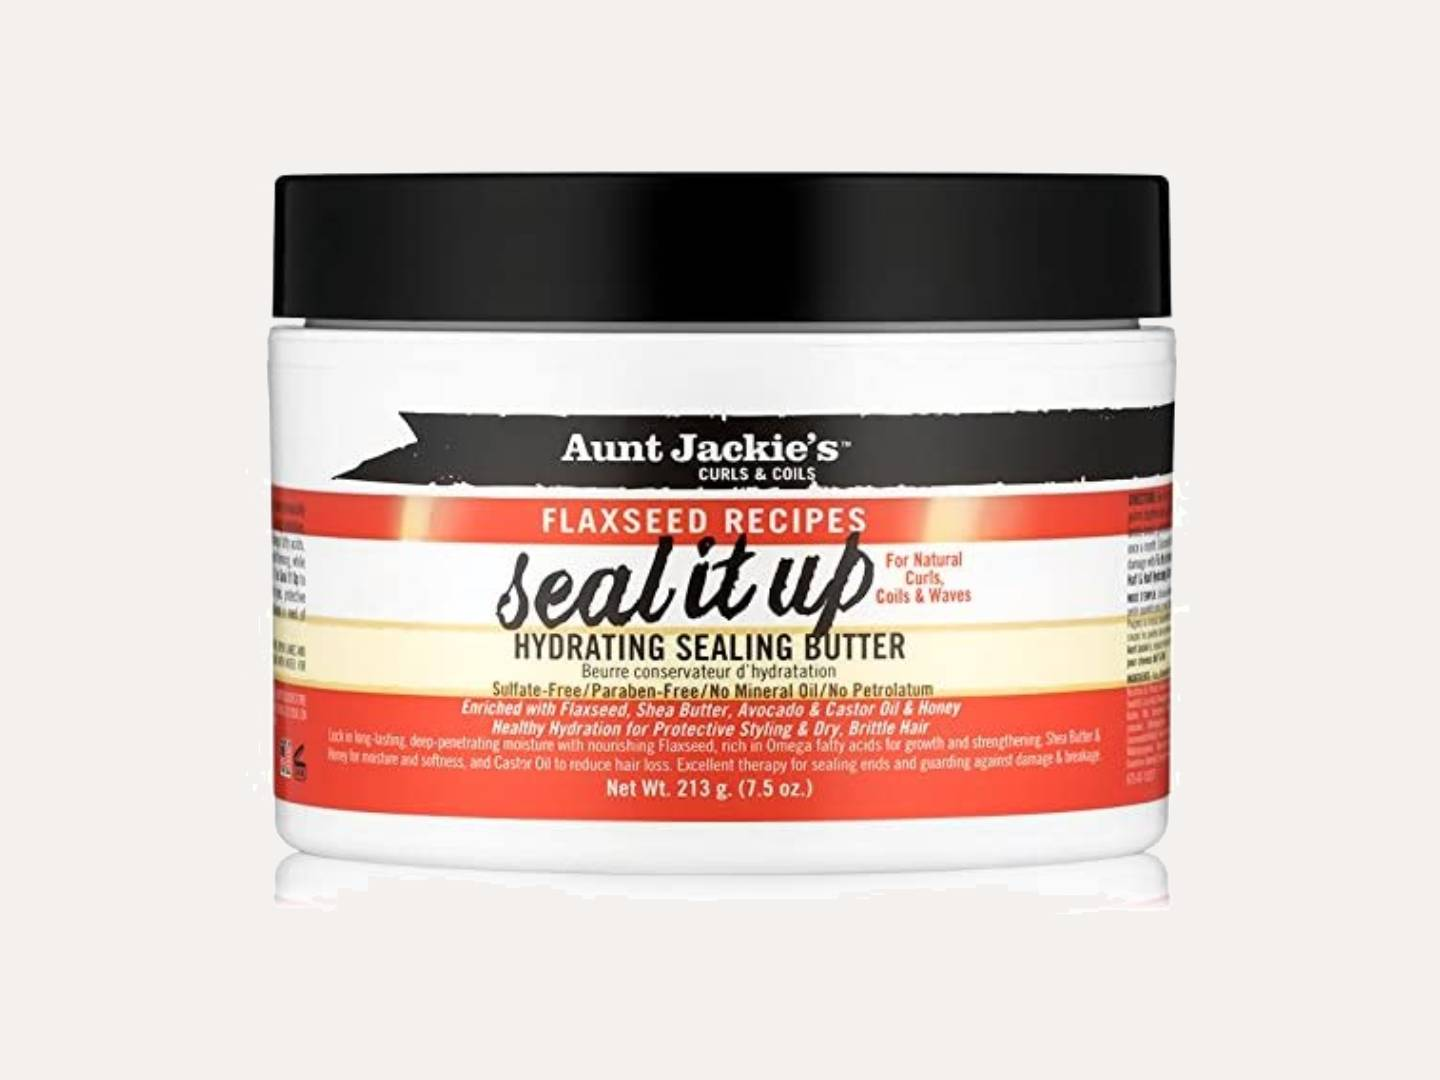 Aunt Jackie's Flaxseed Recipes Seal It Up Hydrating Sealing Butter 7.5oz